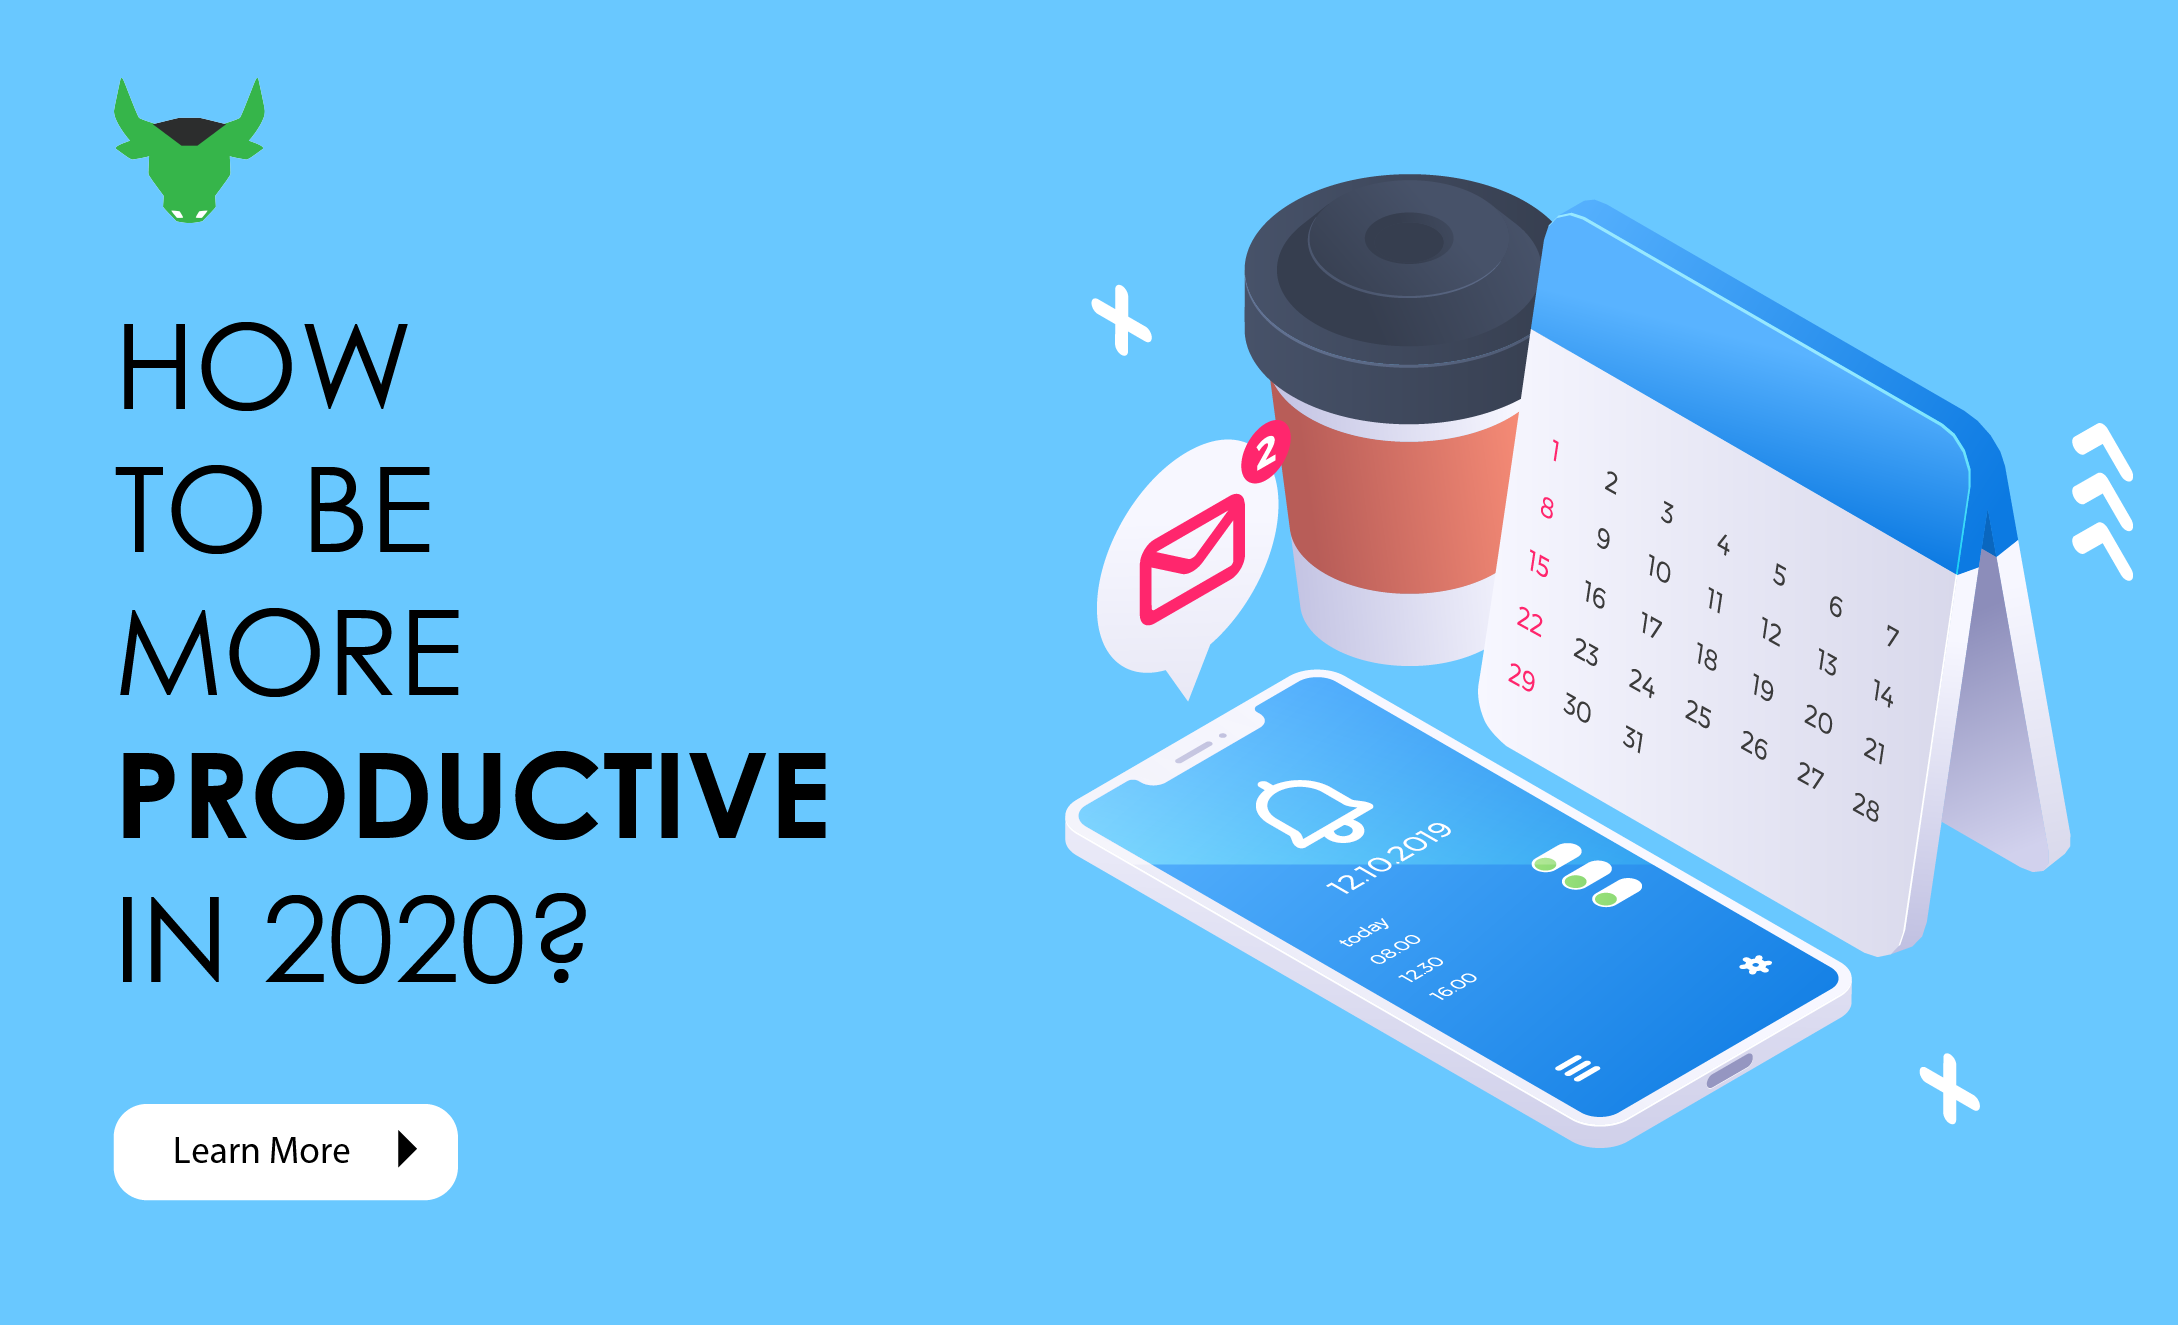 How to be more productive in 2020?